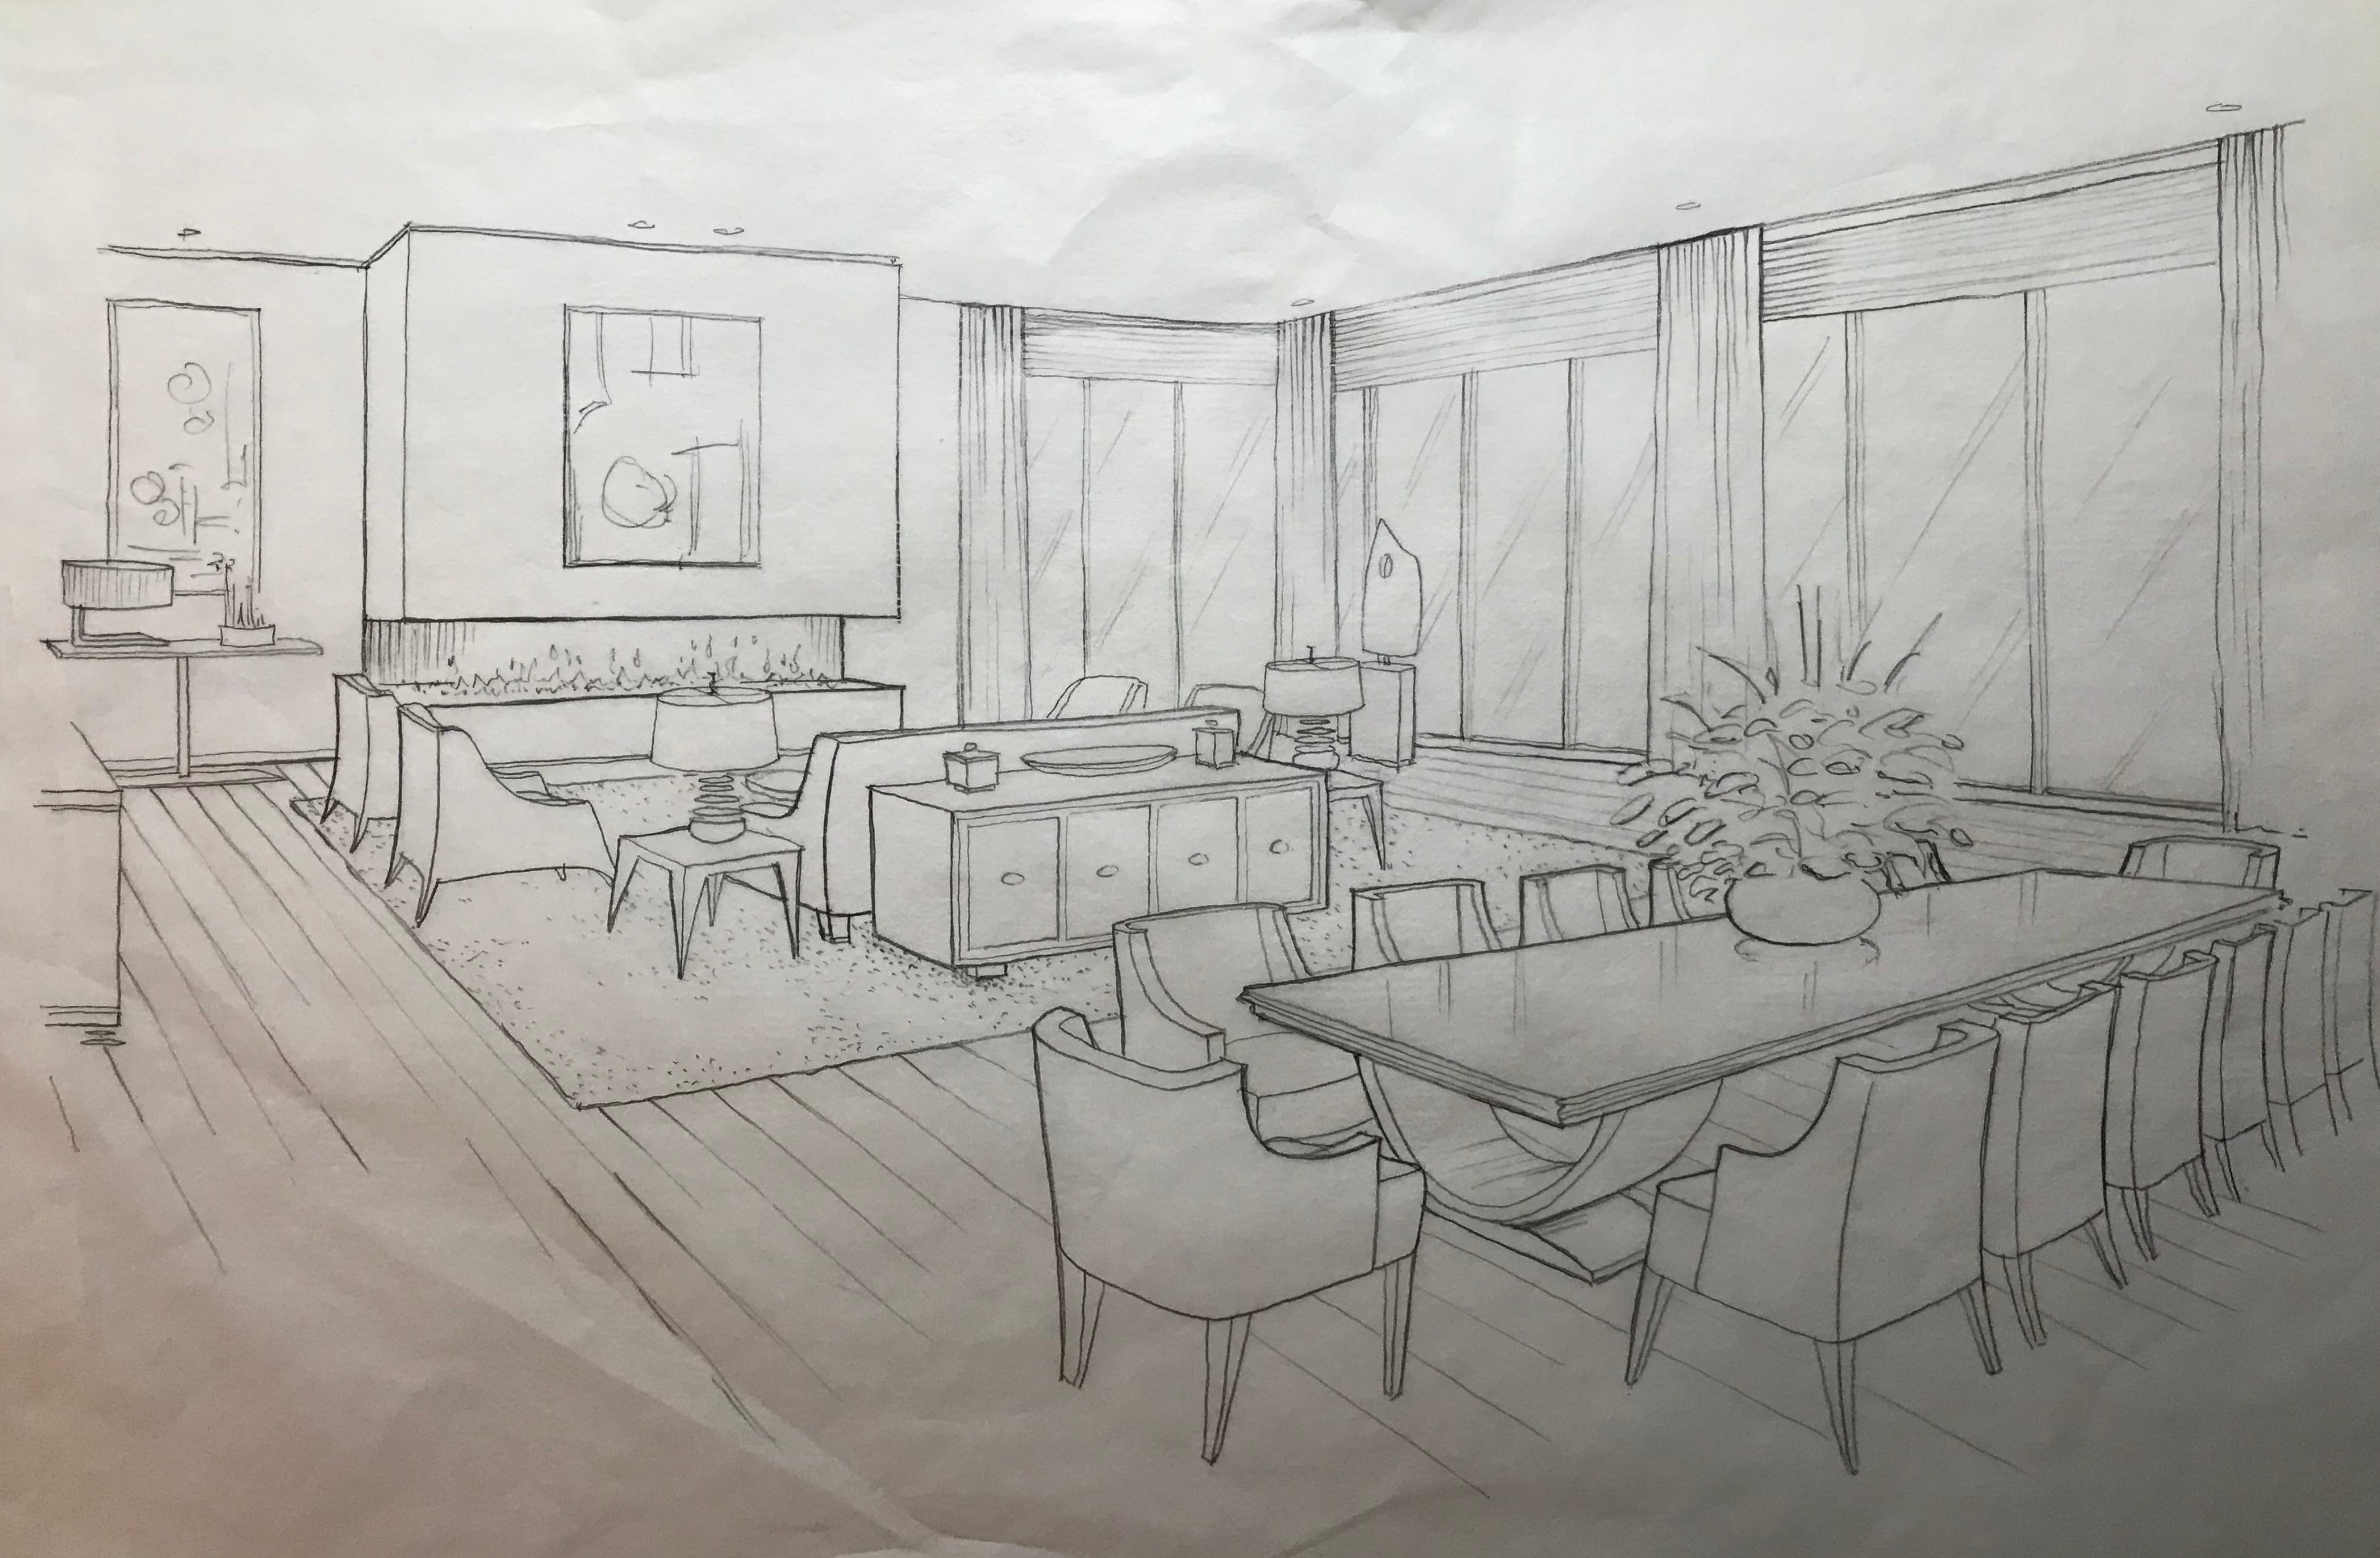 Villa living area sketch